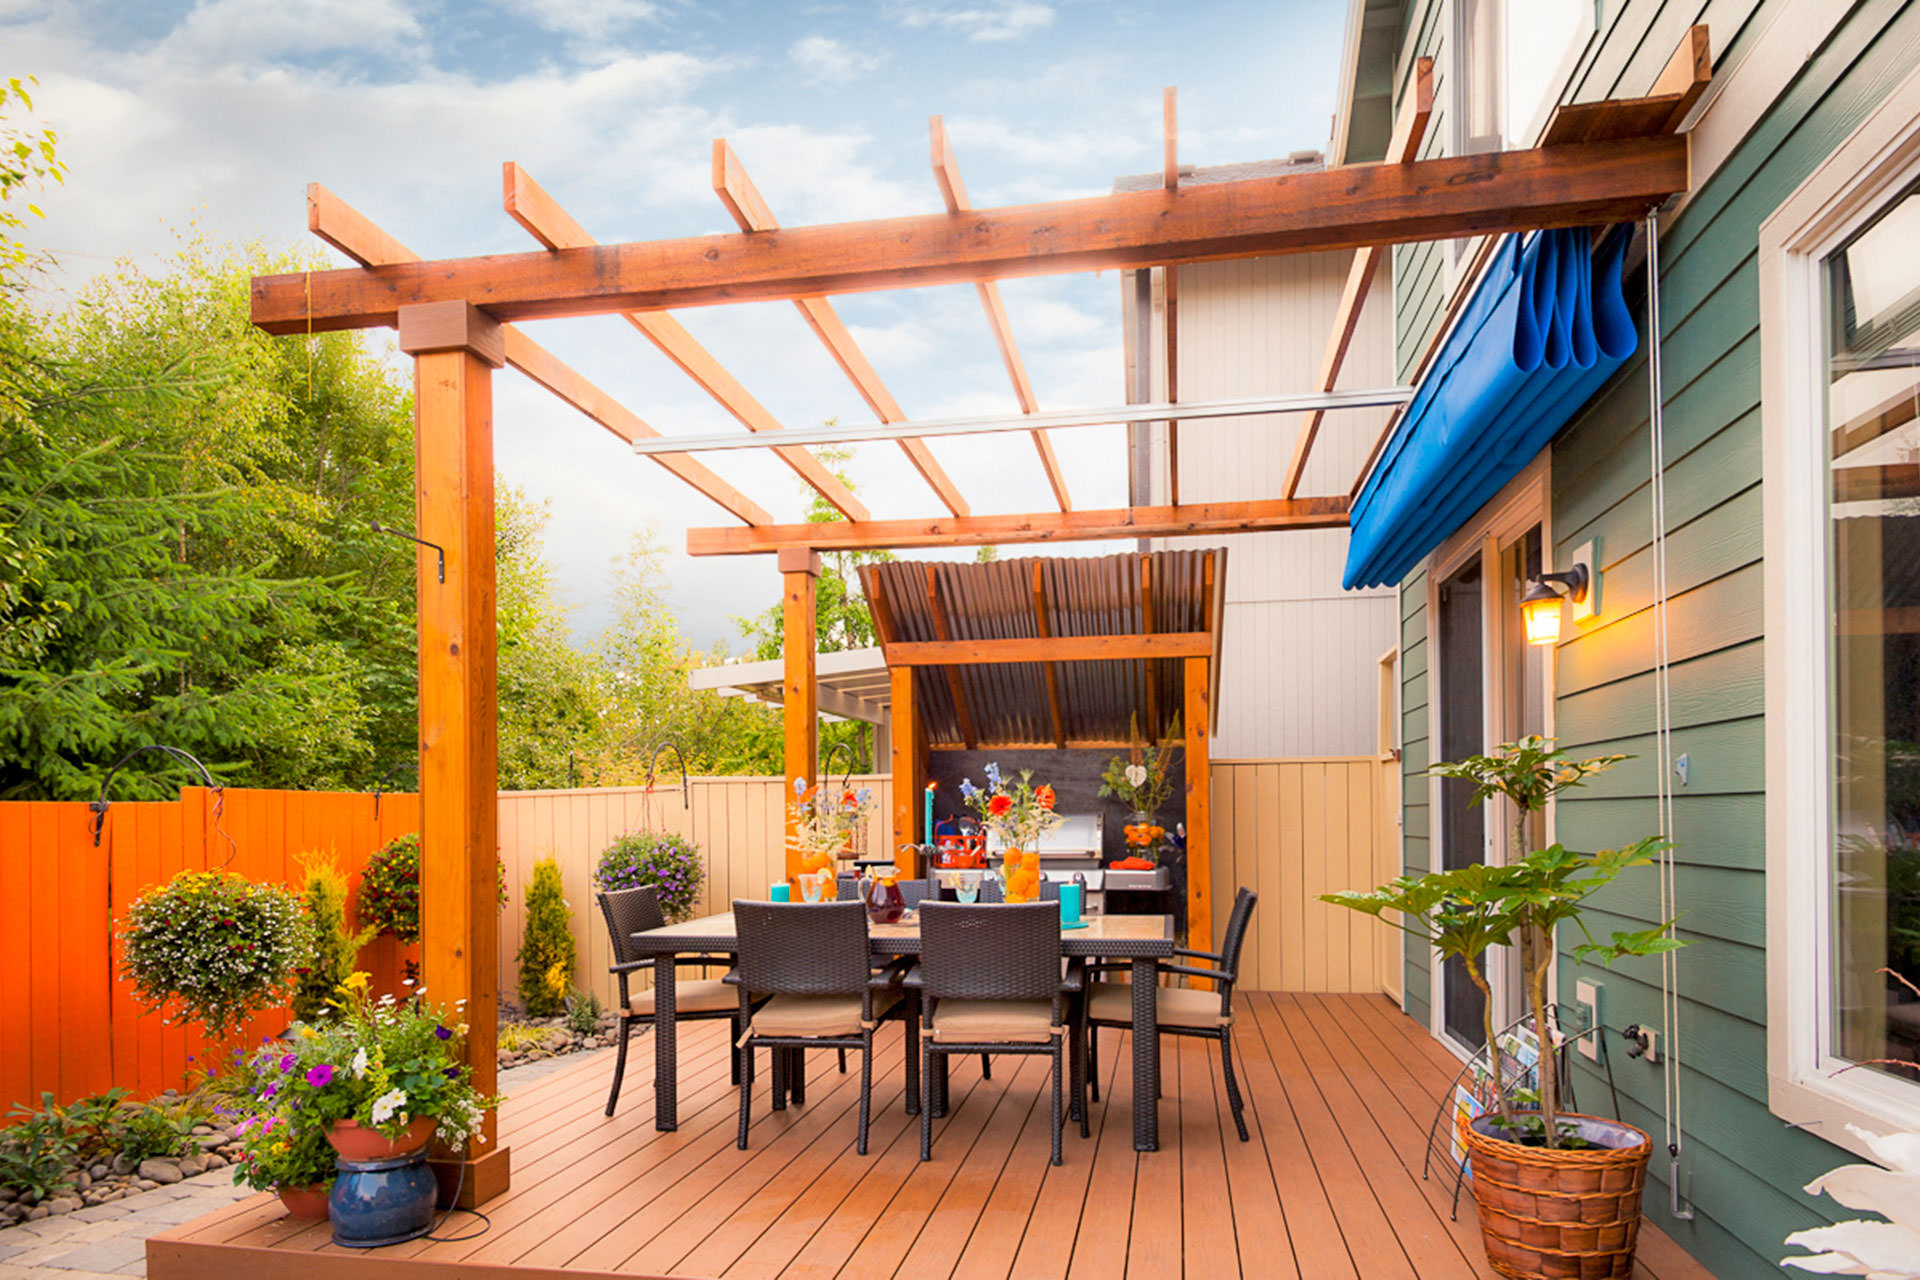 Retractable Patio Cover in Vancouver | ShadeFX Canopies on Patio Covers Ideas  id=90276